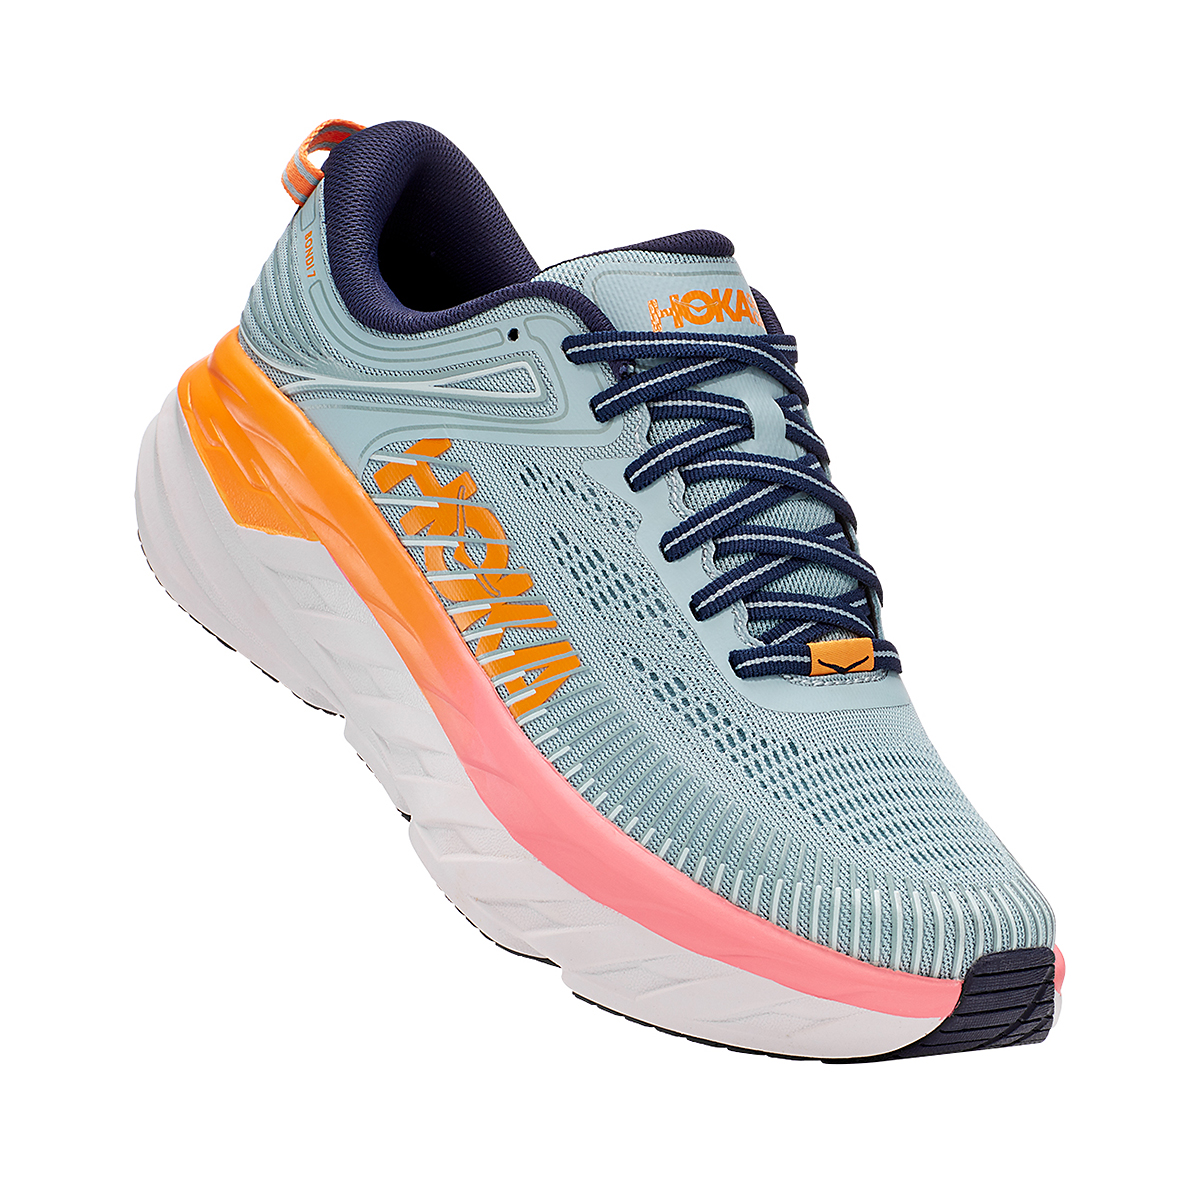 Women's Hoka One One Bondi 7 Running Shoe, , large, image 3